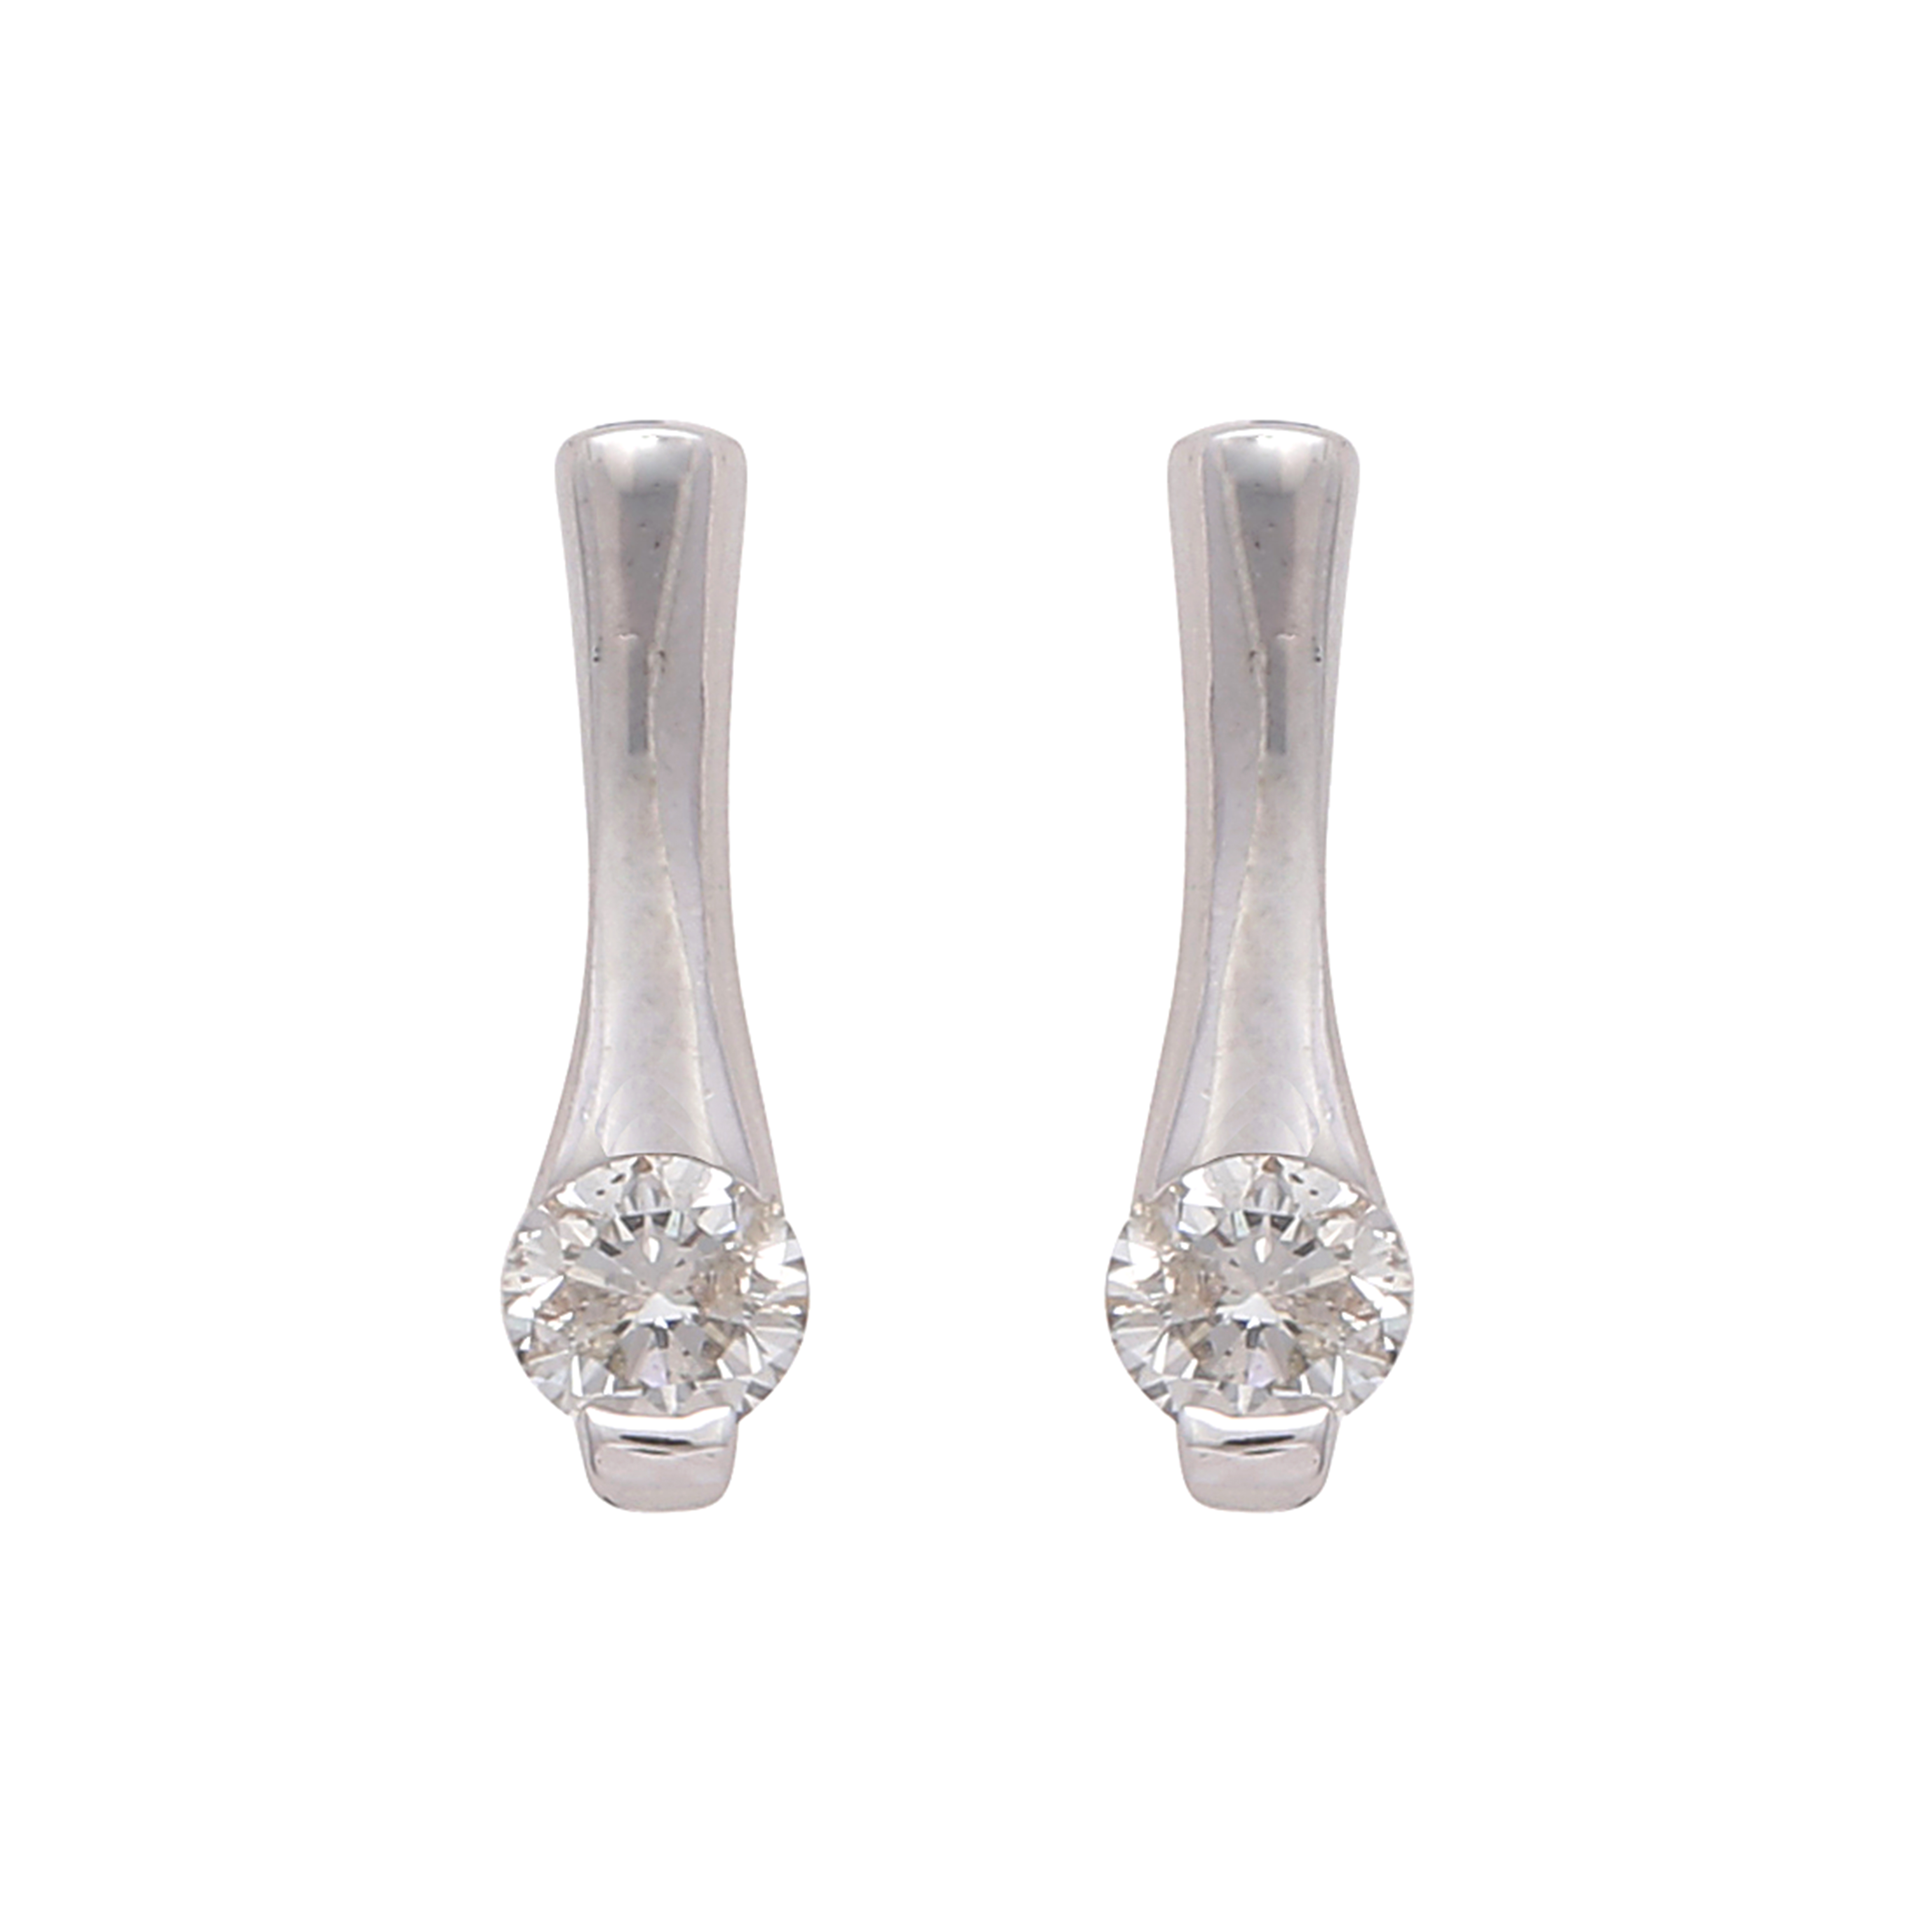 Los 193 - A pair of diamond stud earrings in white gold each designed as a round cut stone set at the bottom